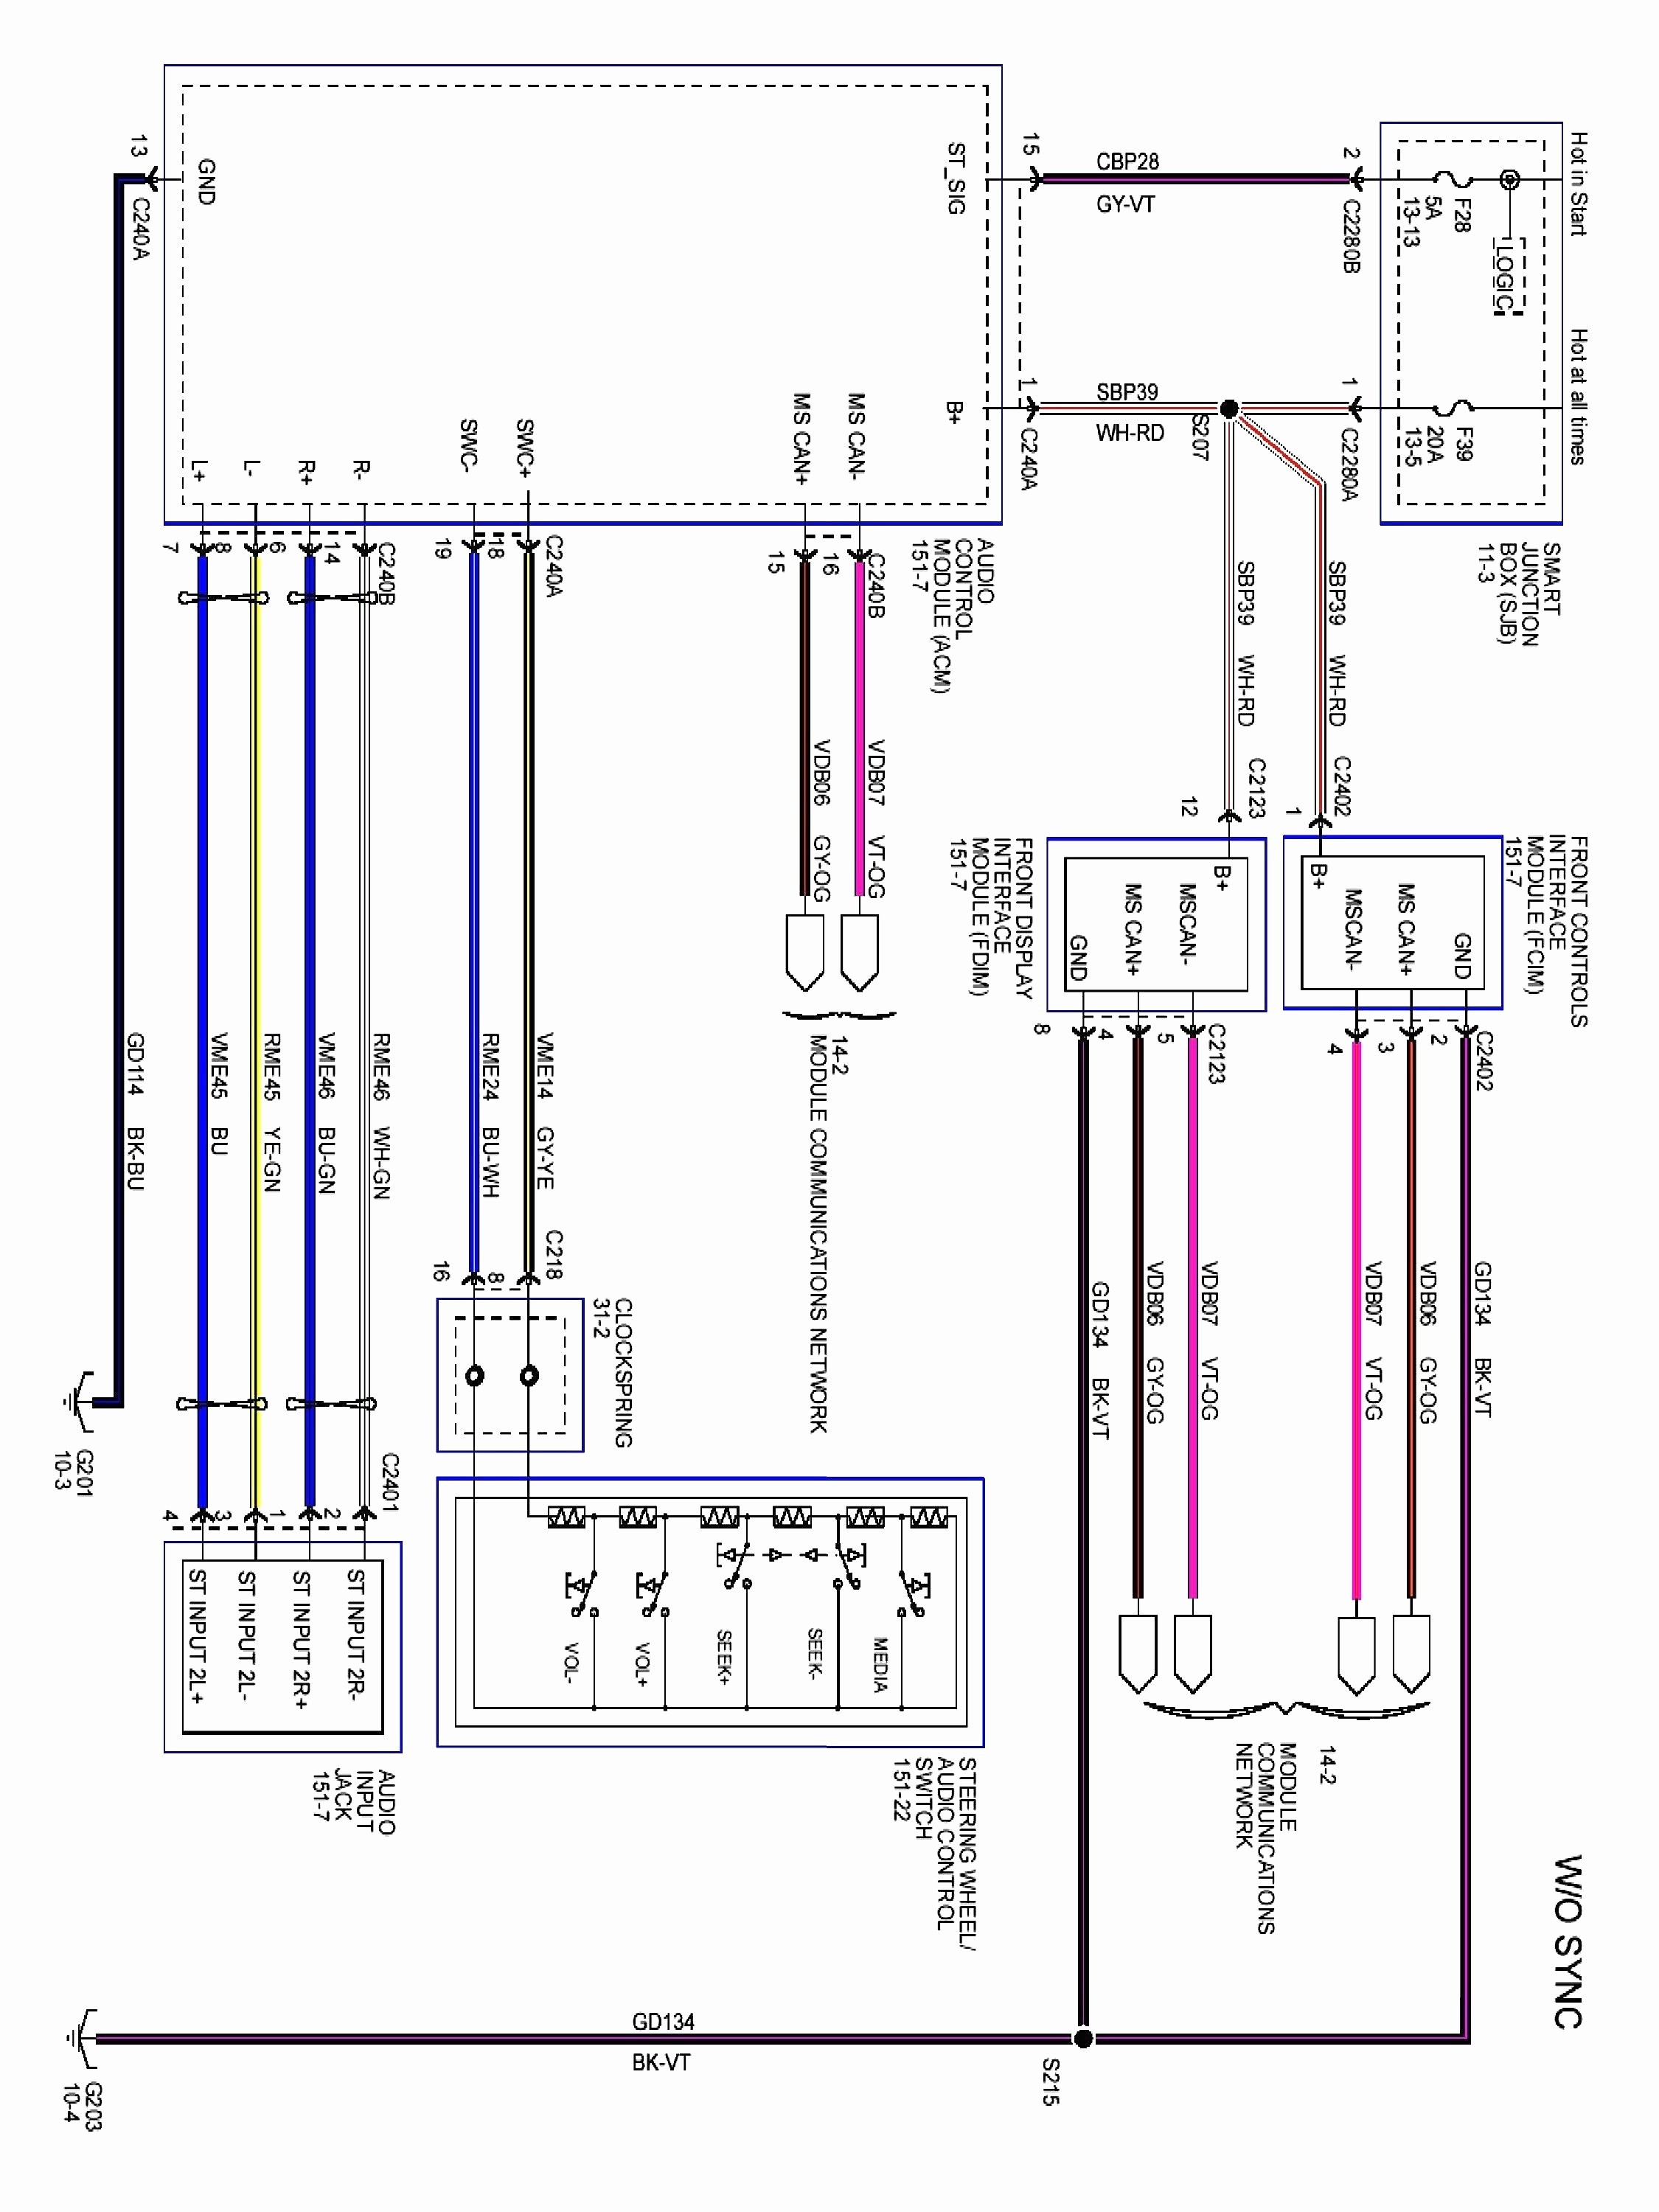 Car Amplifier Wire Diagram Wiring Diagram for Amplifier Car Stereo Best Amplifier Wiring